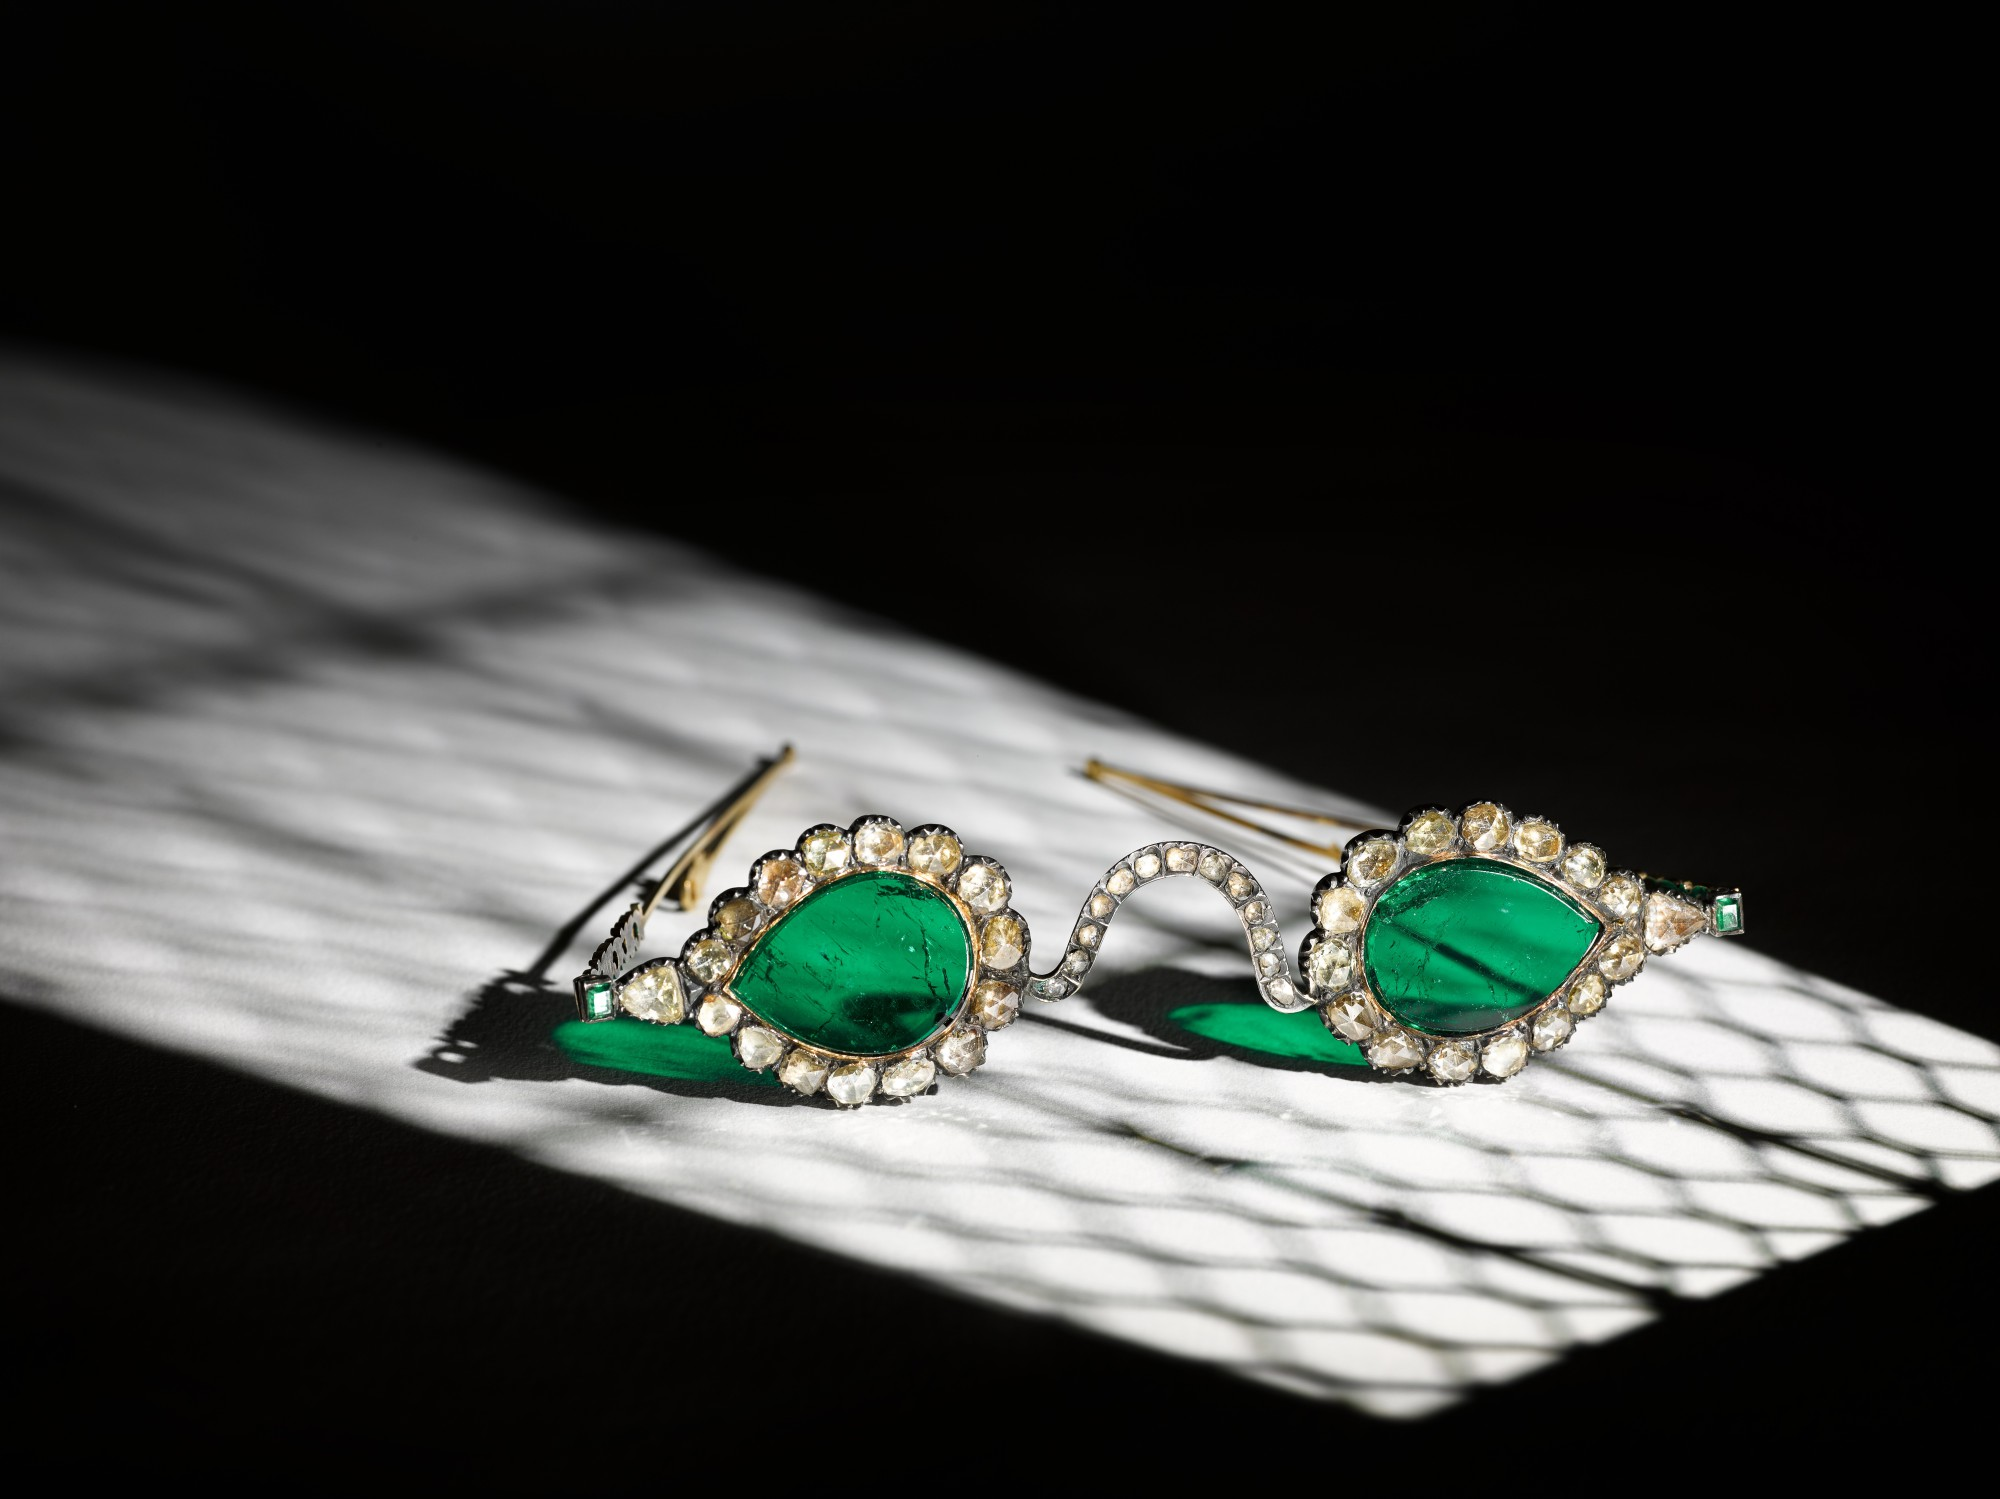 A pair of Mughal spectacles set with emerald lenses, in diamond-mounted frames, India, lenses circa 17th century, frames 19th century